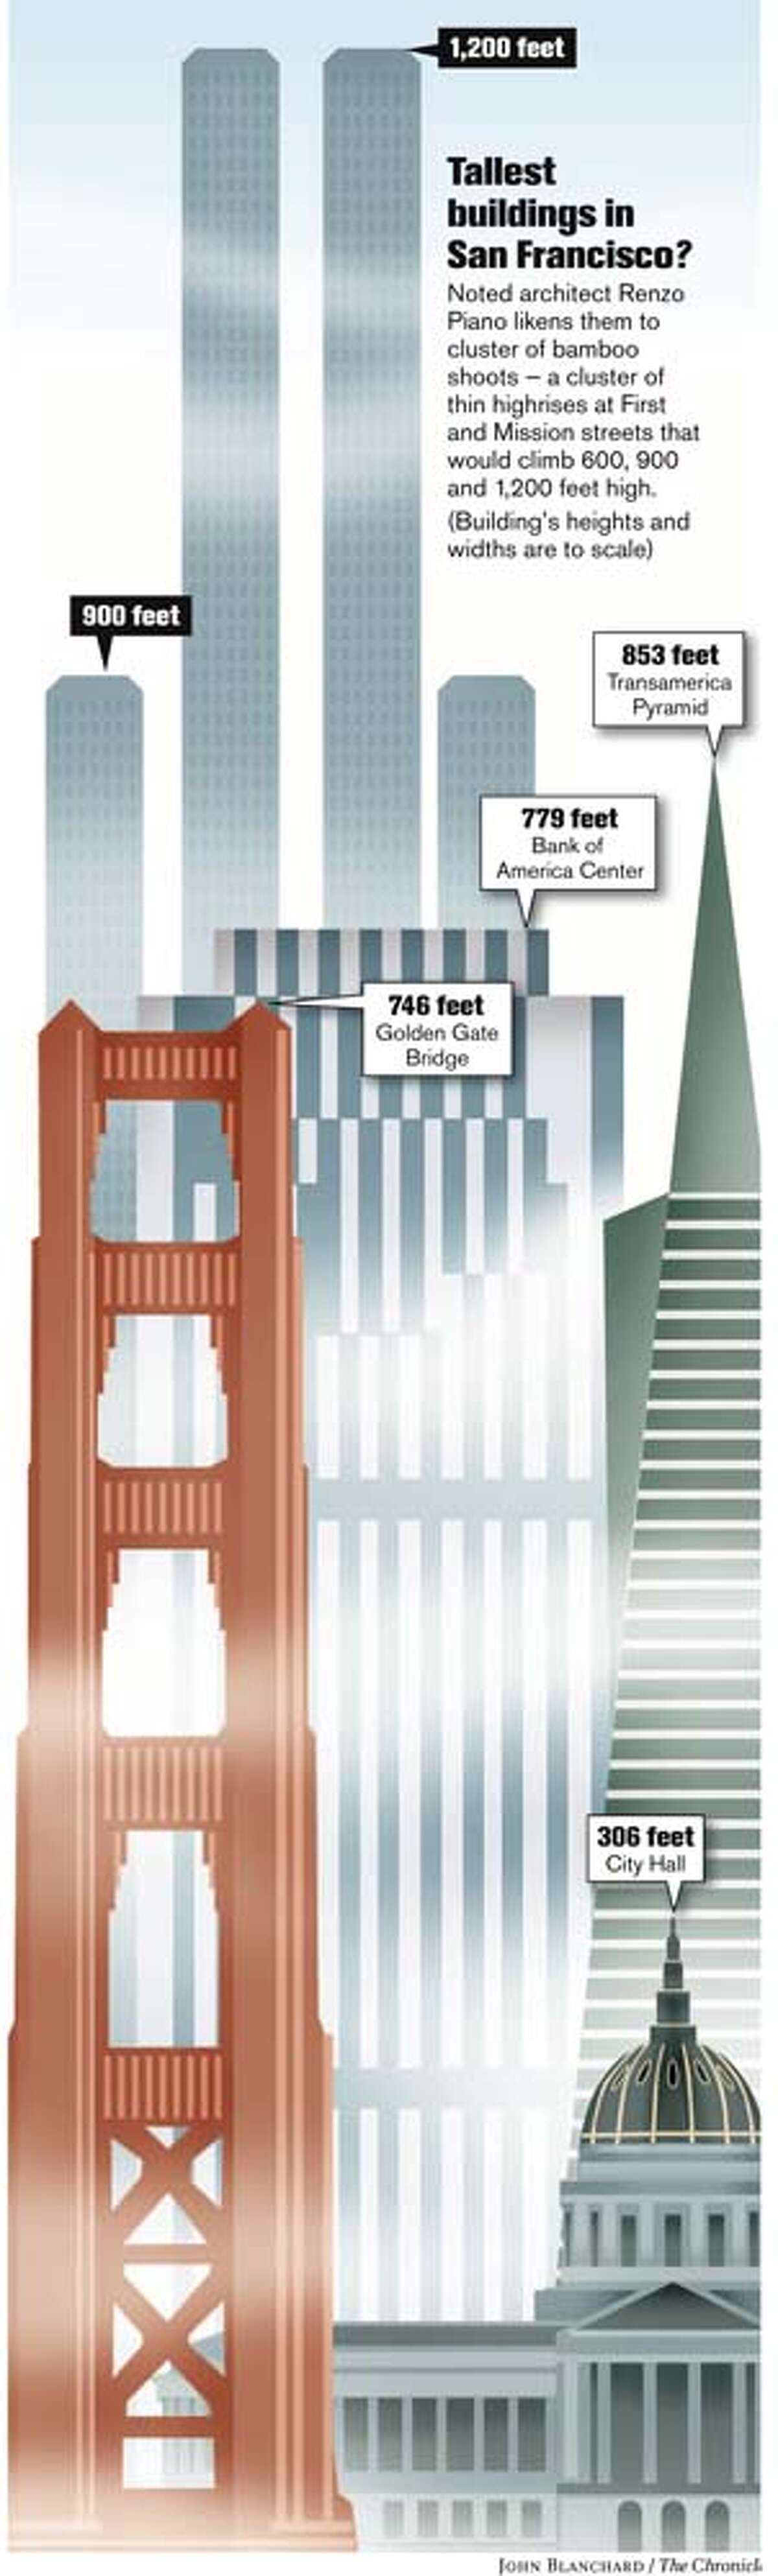 Tallest buildings in San Francisco? Chronicle graphic by John Blanchard